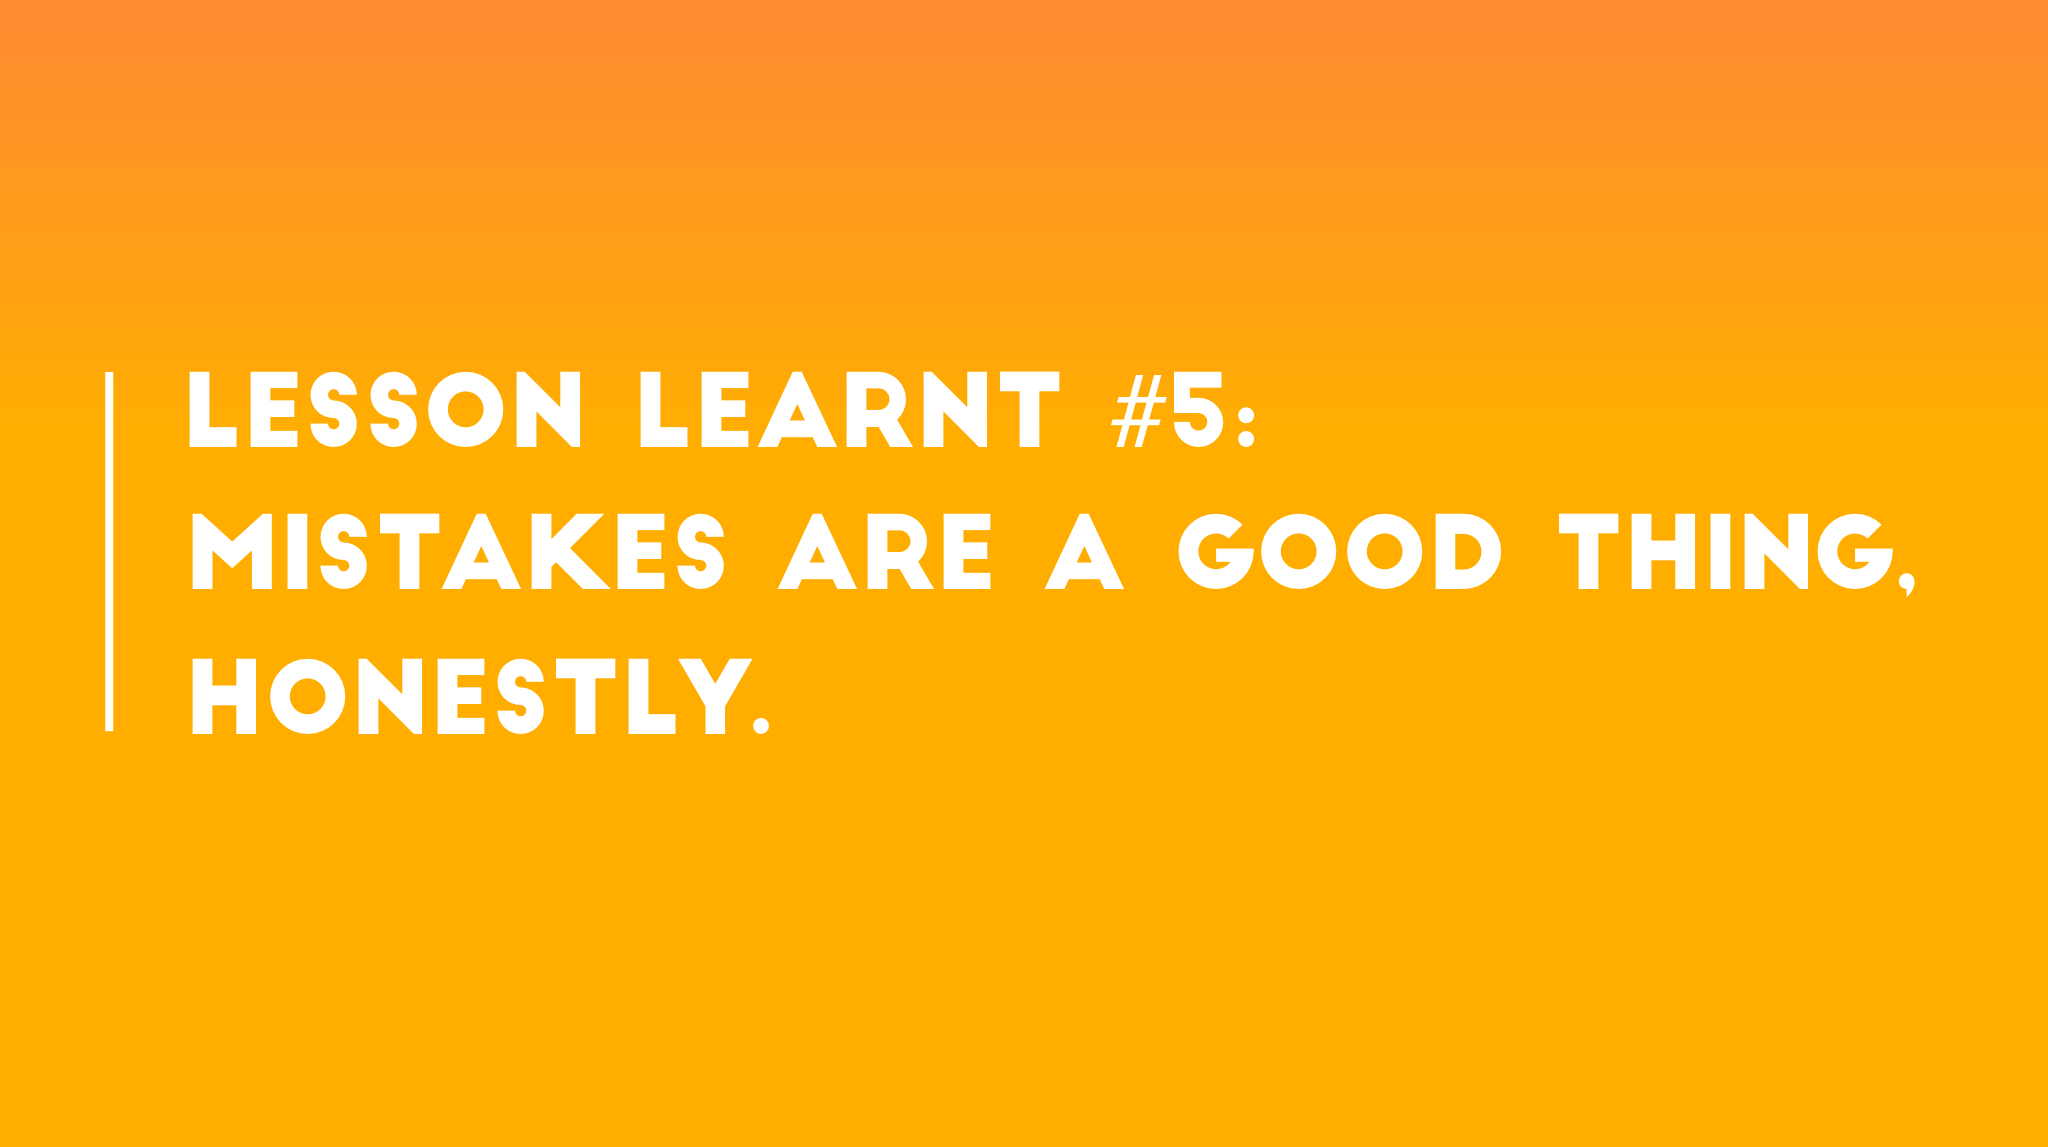 Lesson learnt #5: Mistakes are a good thing. Honestly.